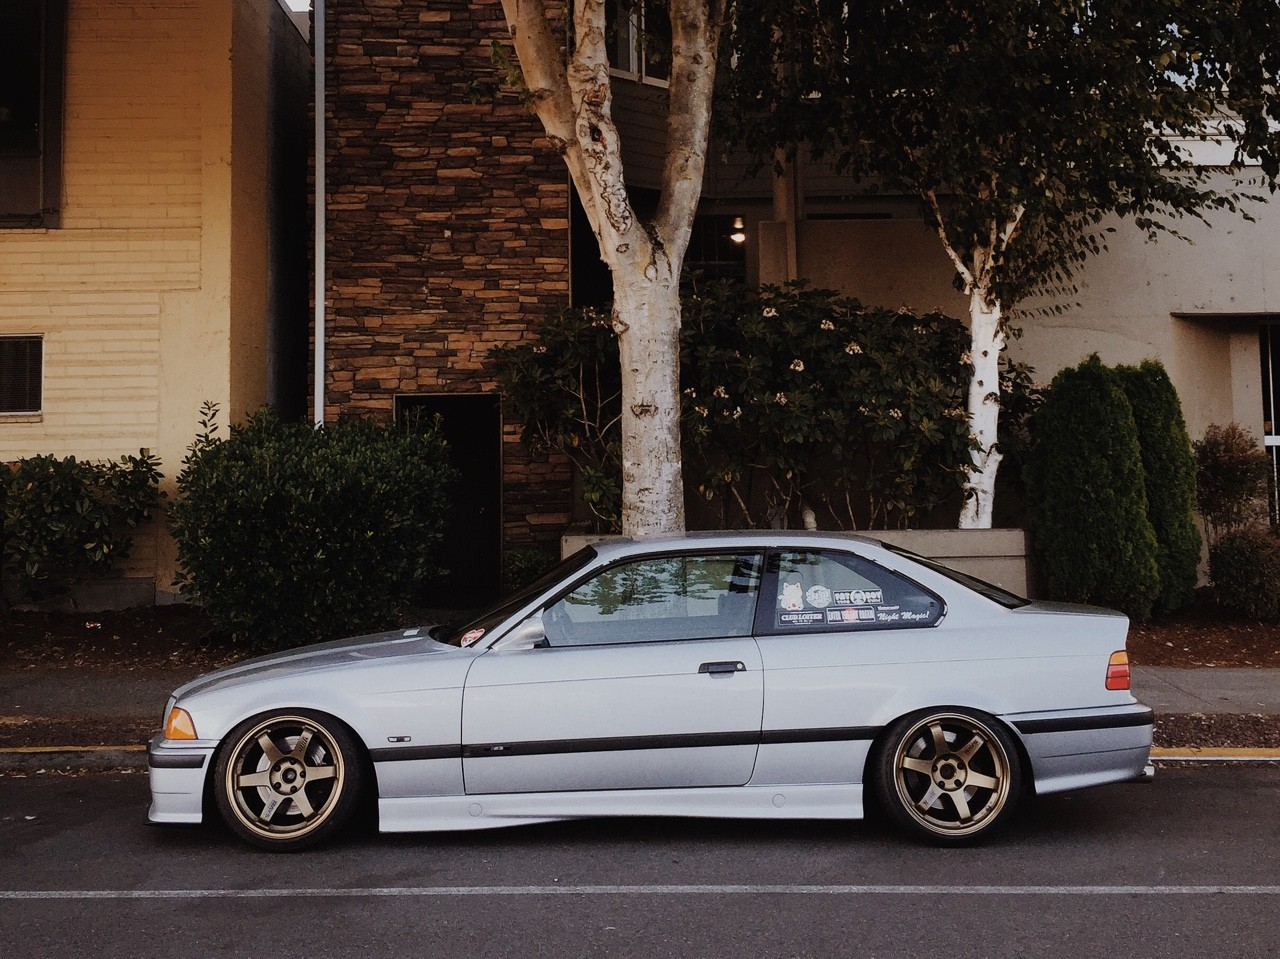 Bmw Car Hd Wallpaper For Mobile Car Bmw E36 Stance Lowered Tuning Trees Bushes